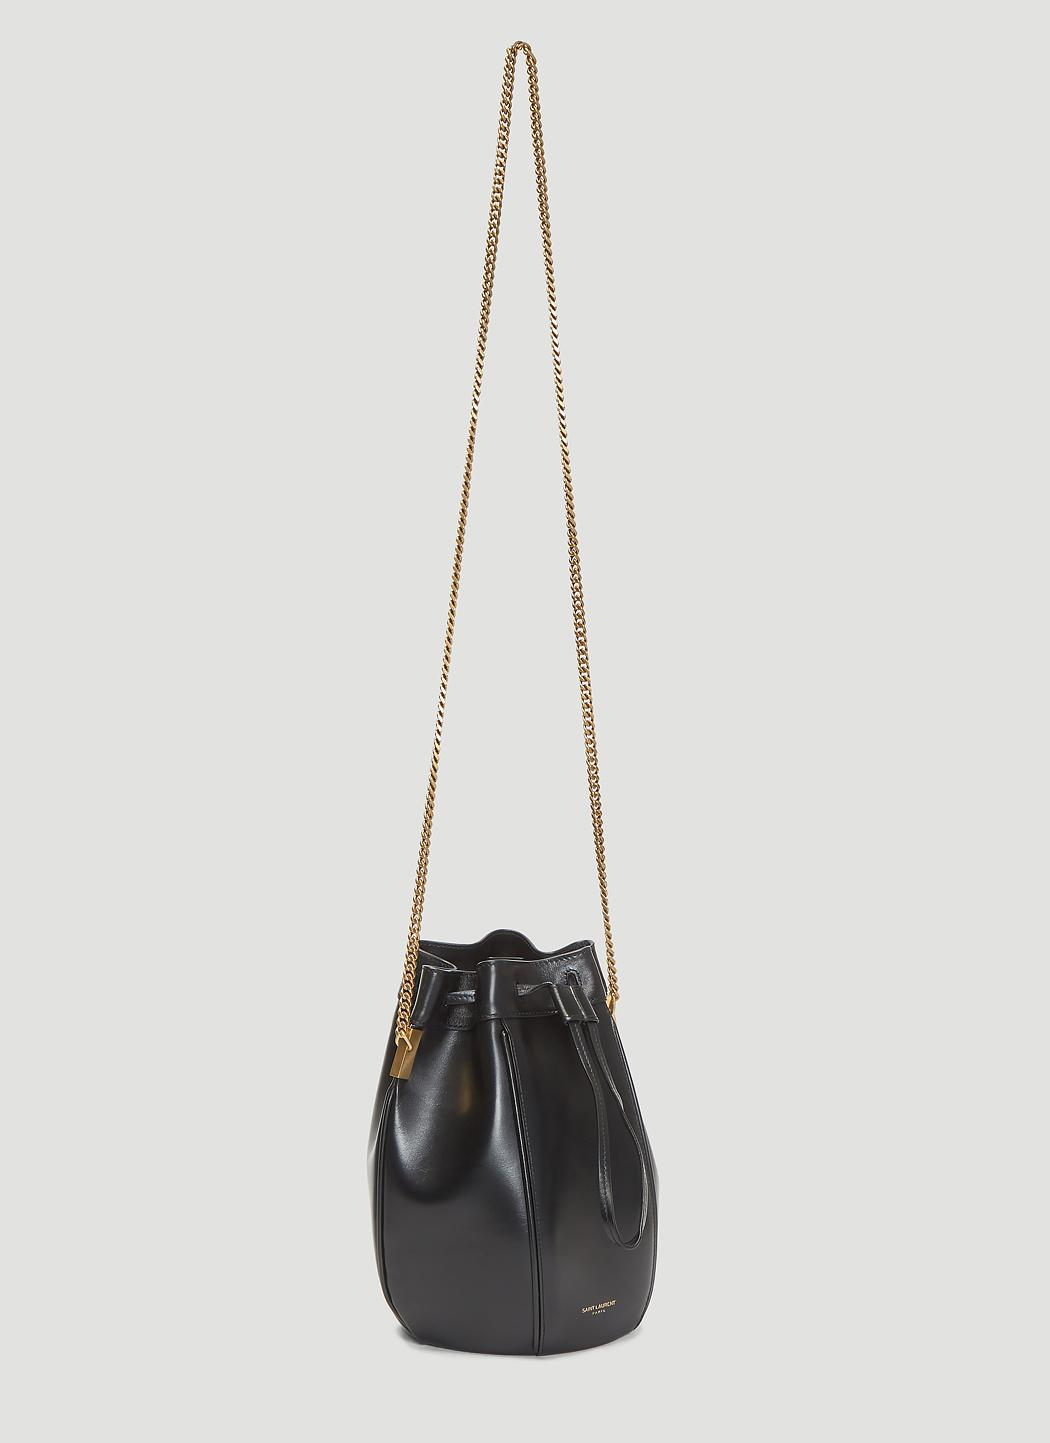 966545265f43 Saint Laurent - Talitha Bucket Bag In Black - Lyst. View fullscreen